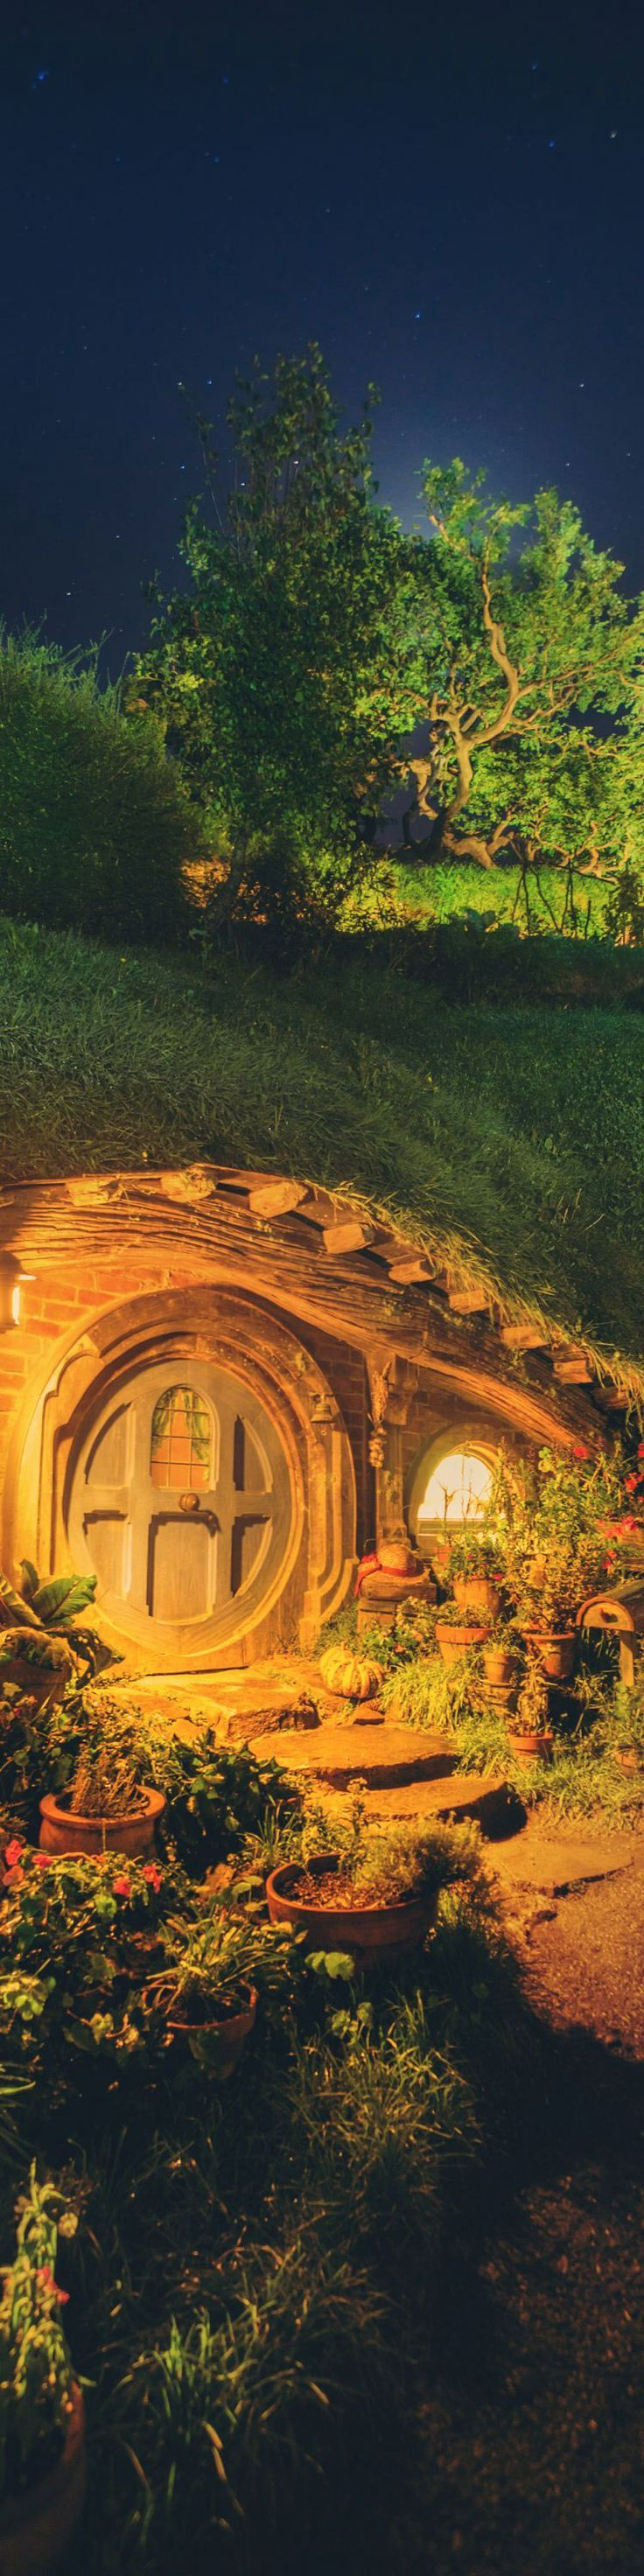 25+ best Hobbit home ideas on Pinterest